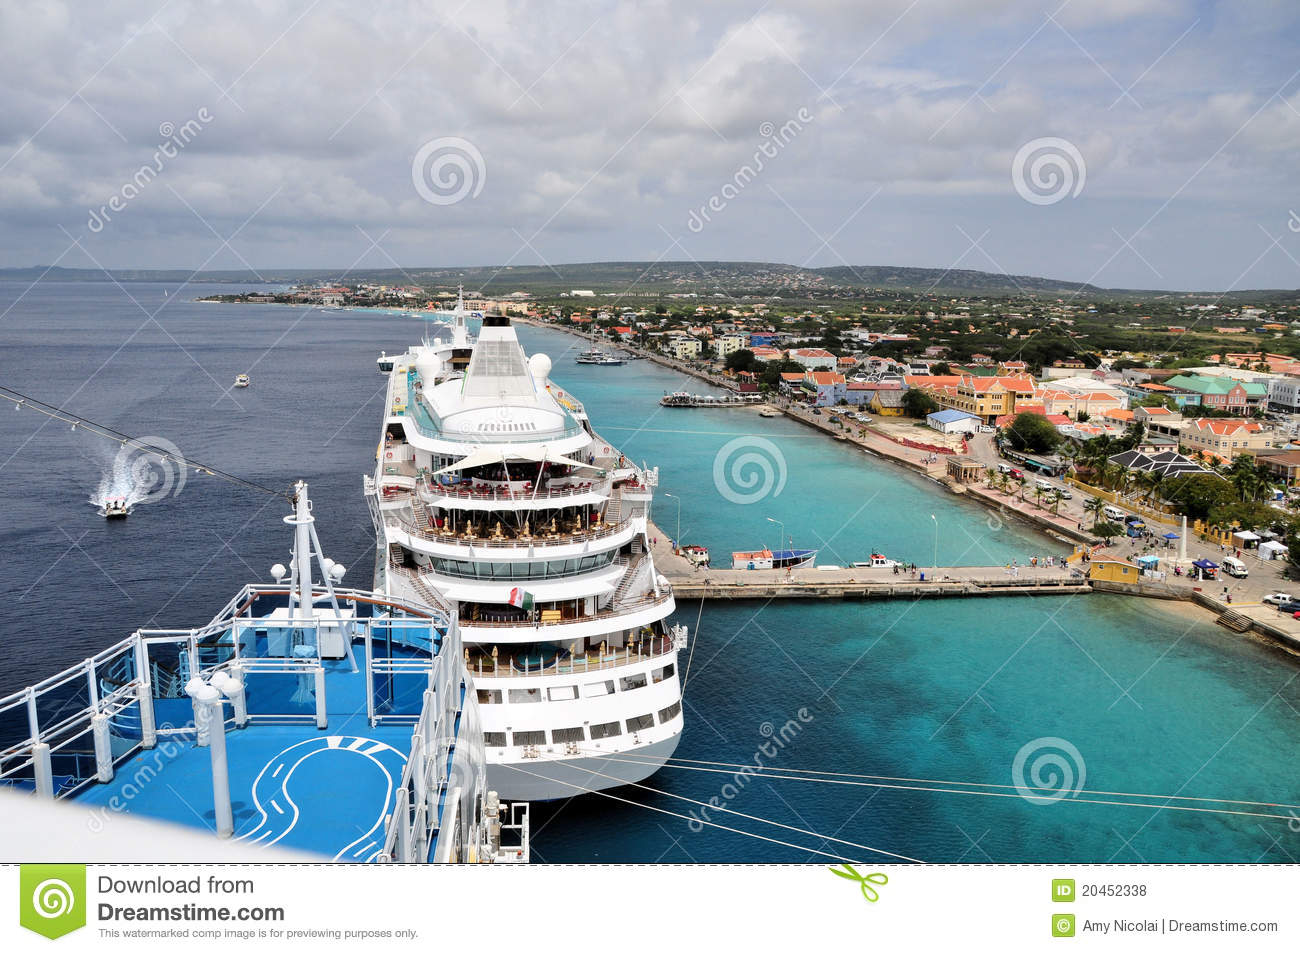 View of Oranjestad from cruise ship